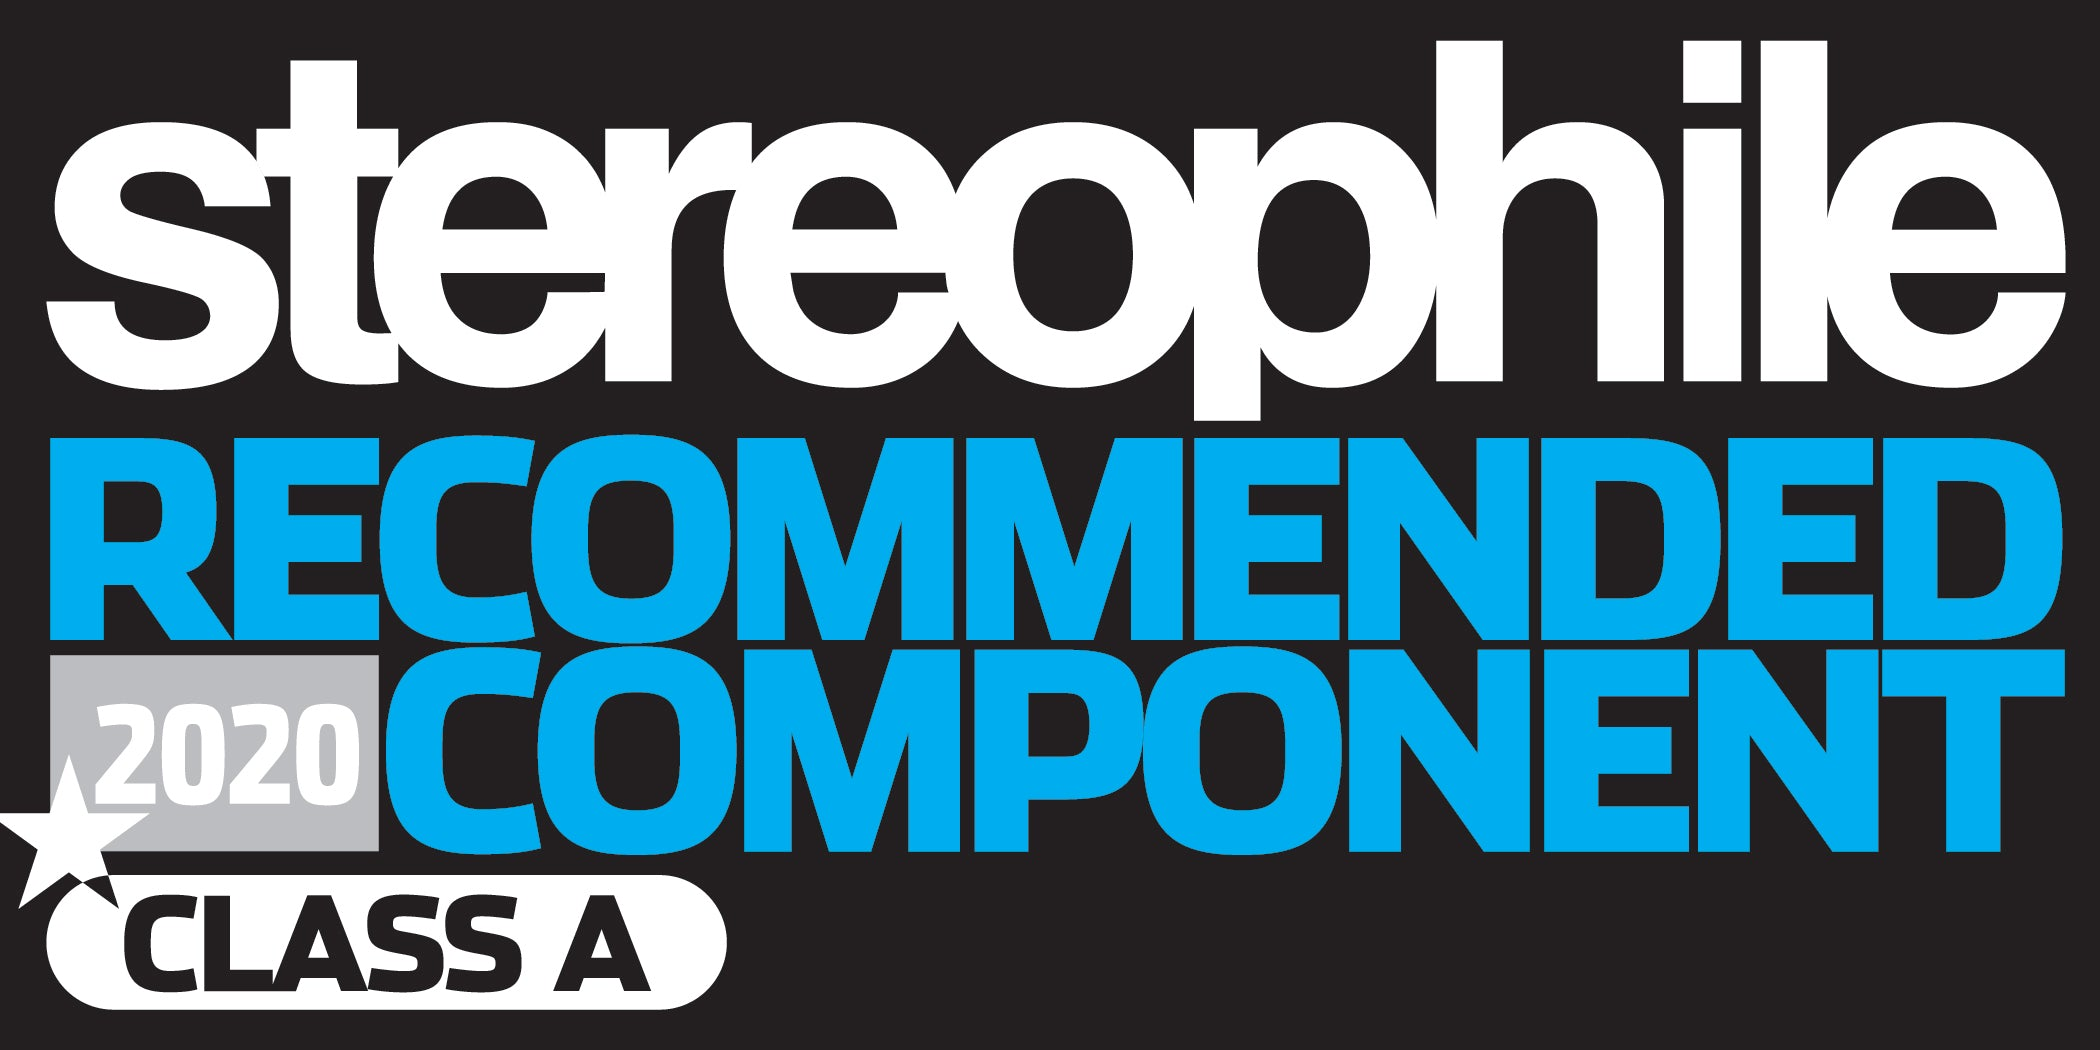 Stereophile Recommended Component - Class A - 2020